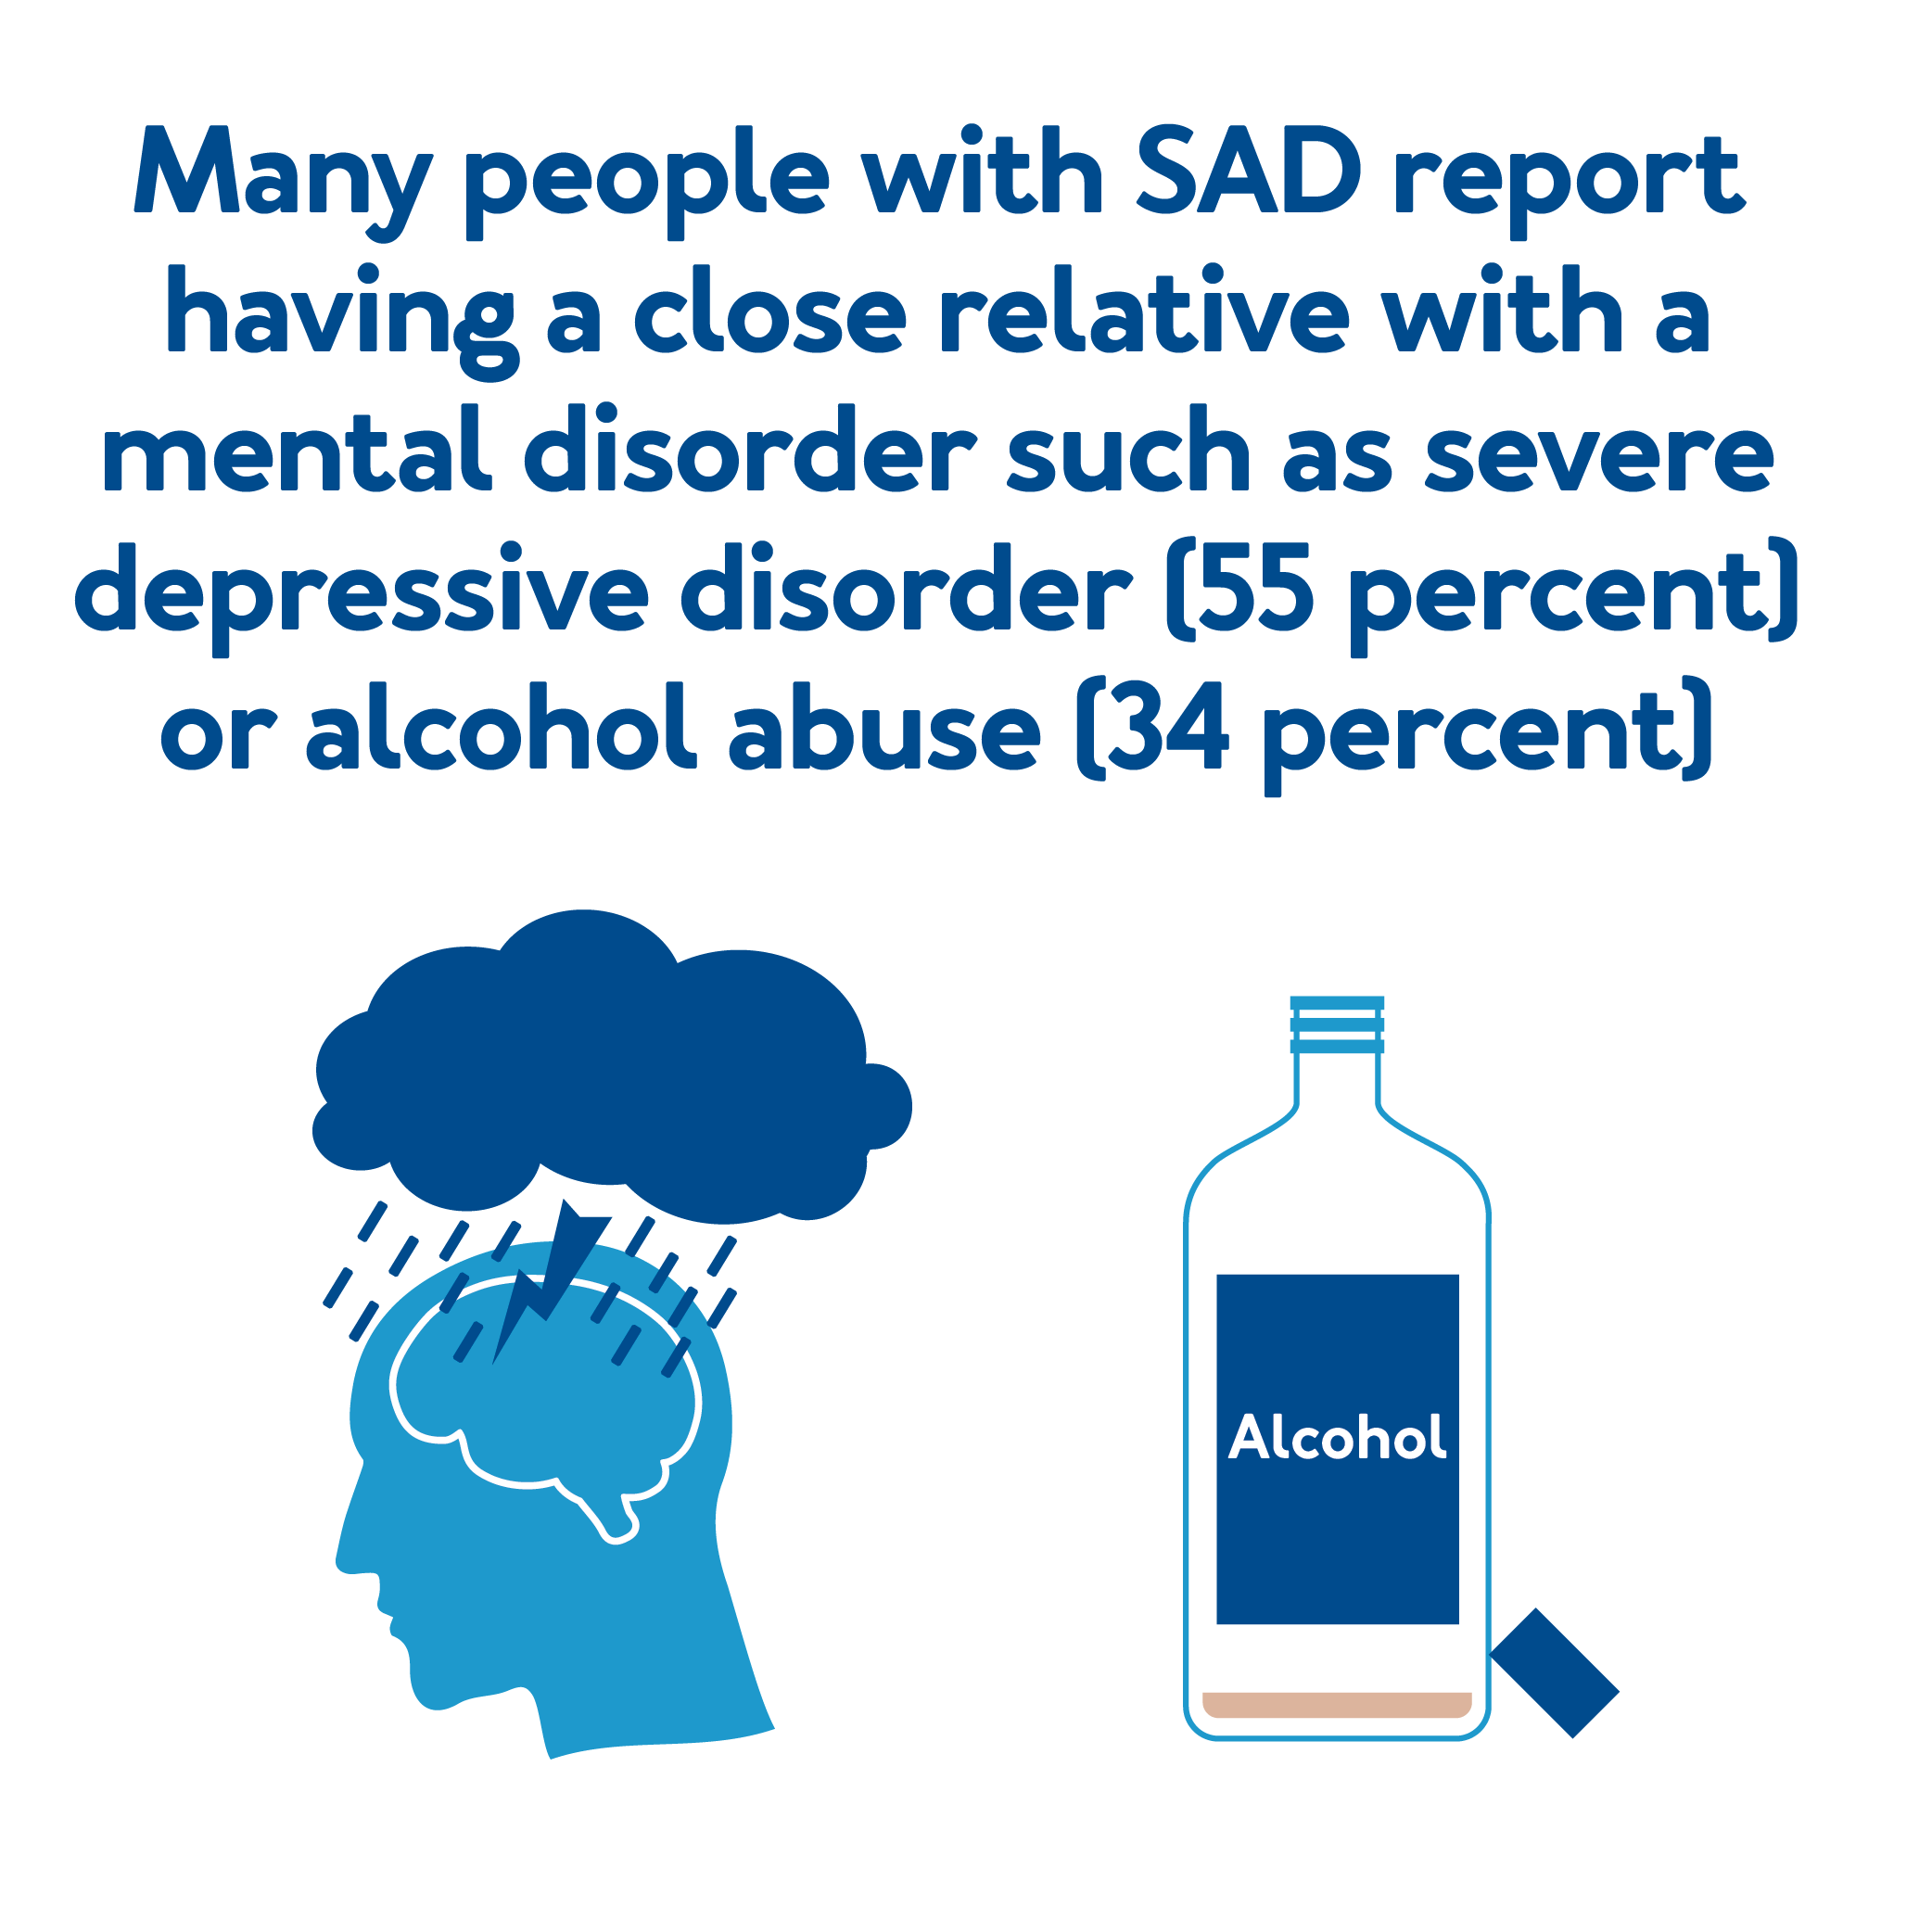 Many people with SAD report having a close relative with a mental disorder such as severe depressive disorder (55 percent) or alcohol abuse (34 percent).